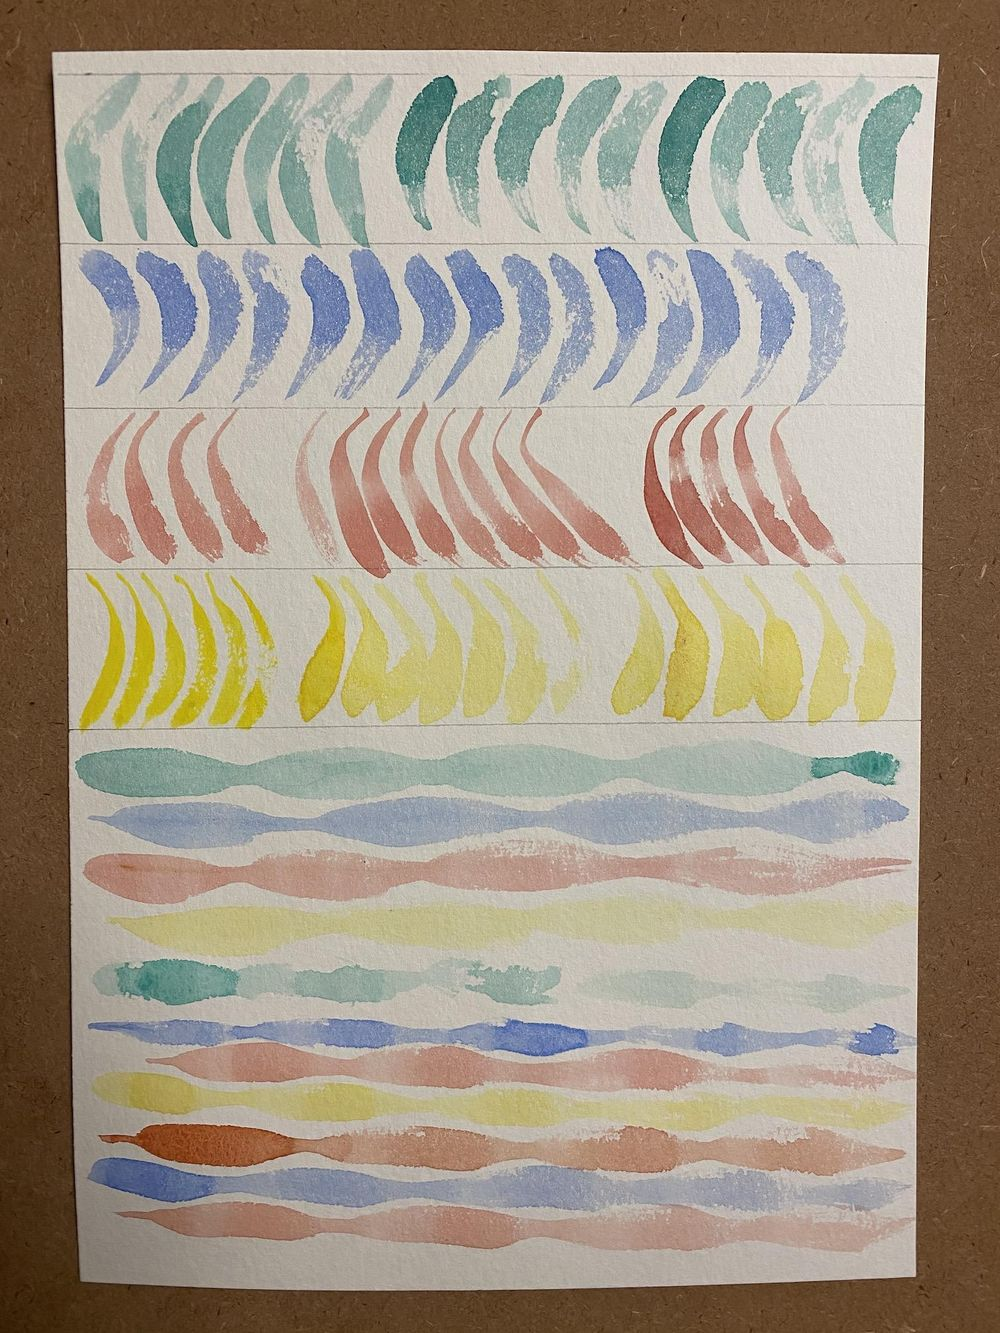 Watercolor workout exercises - image 8 - student project